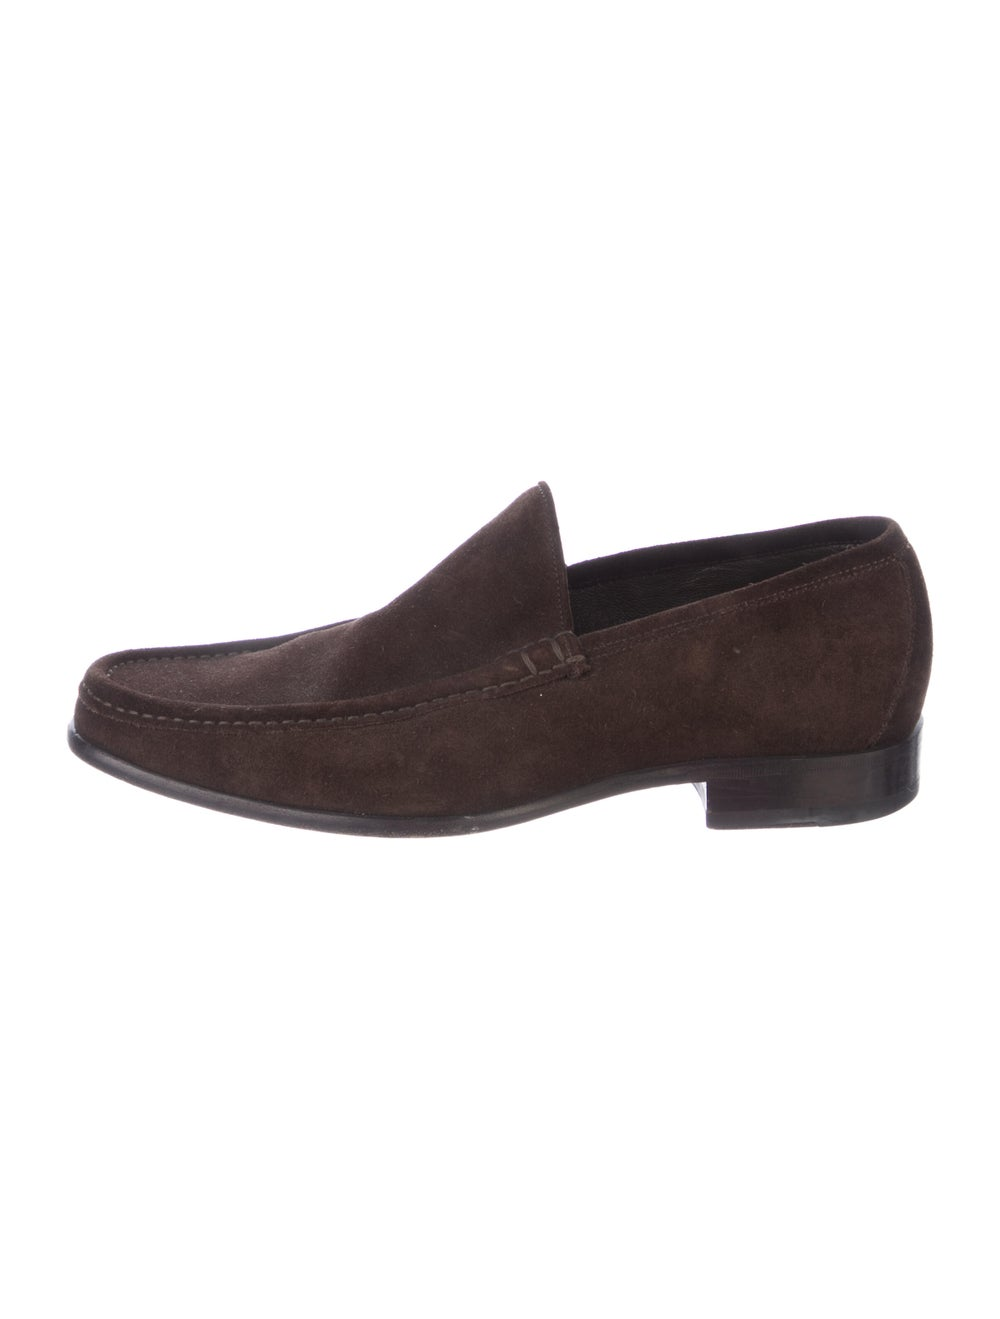 Gucci Suede Dress Loafers Brown - image 1